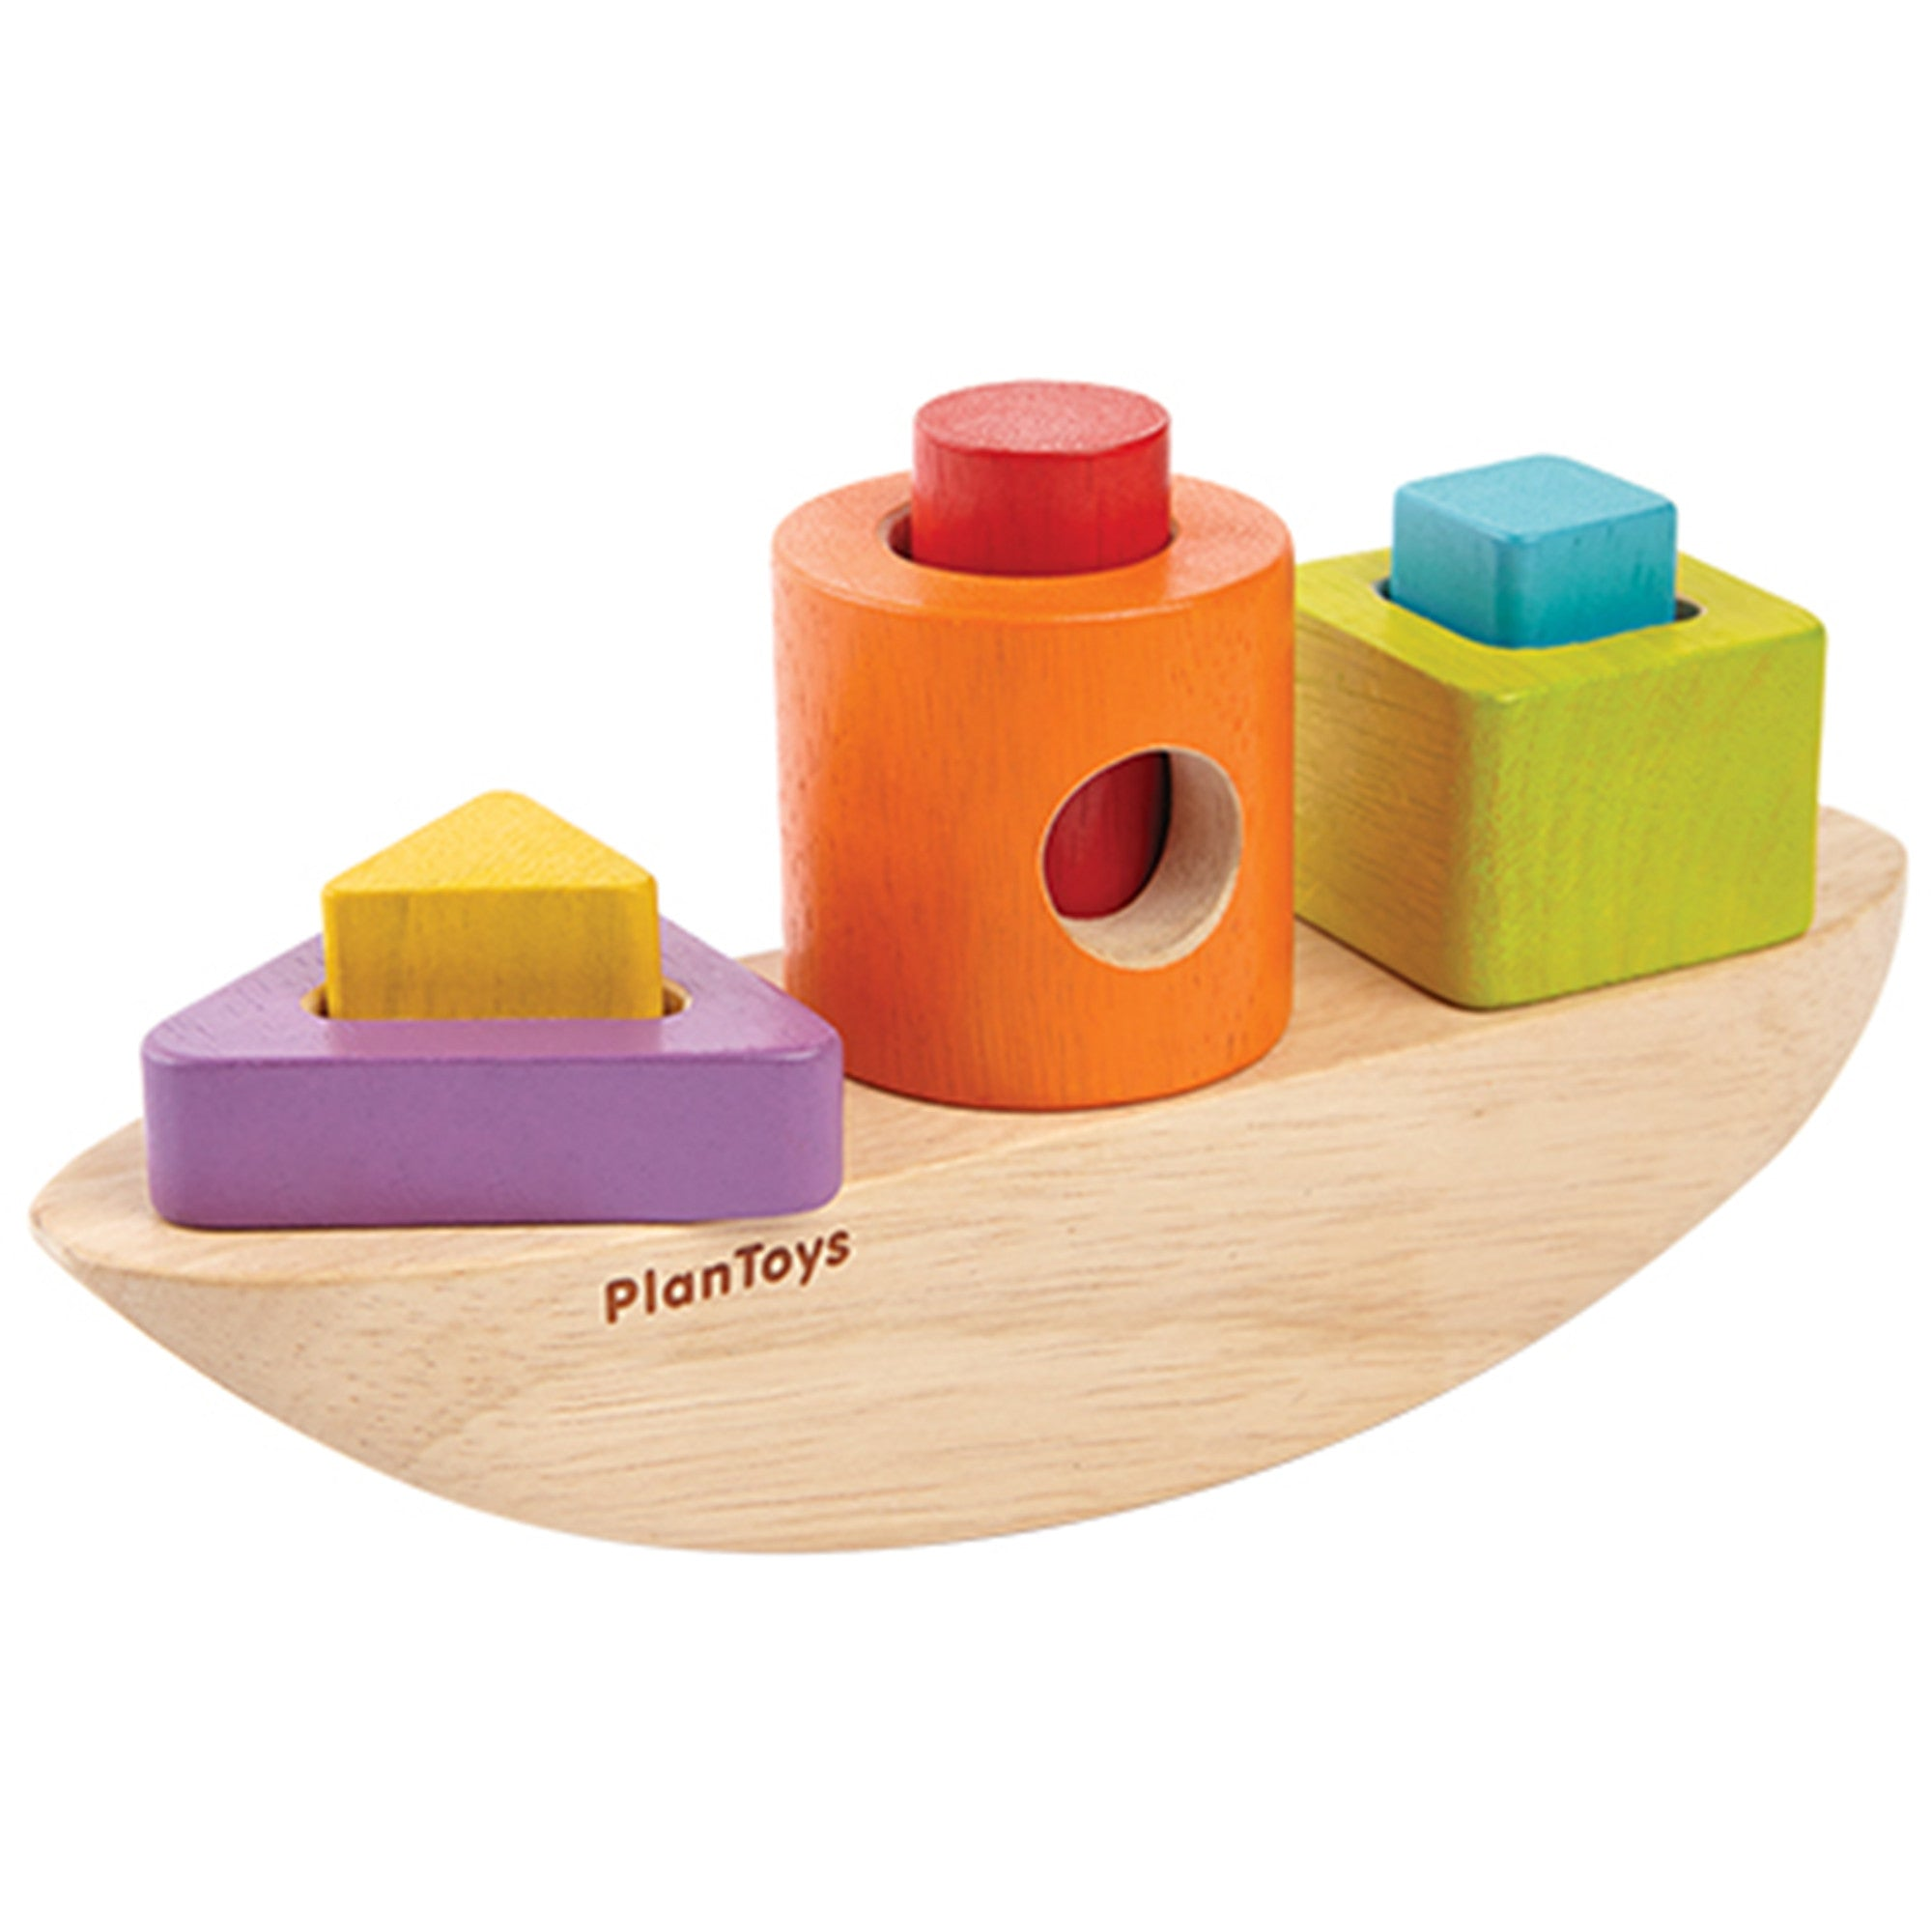 Plan Toys Sorting Boat PlanToys Activity Toys at Little Earth Nest Eco Shop